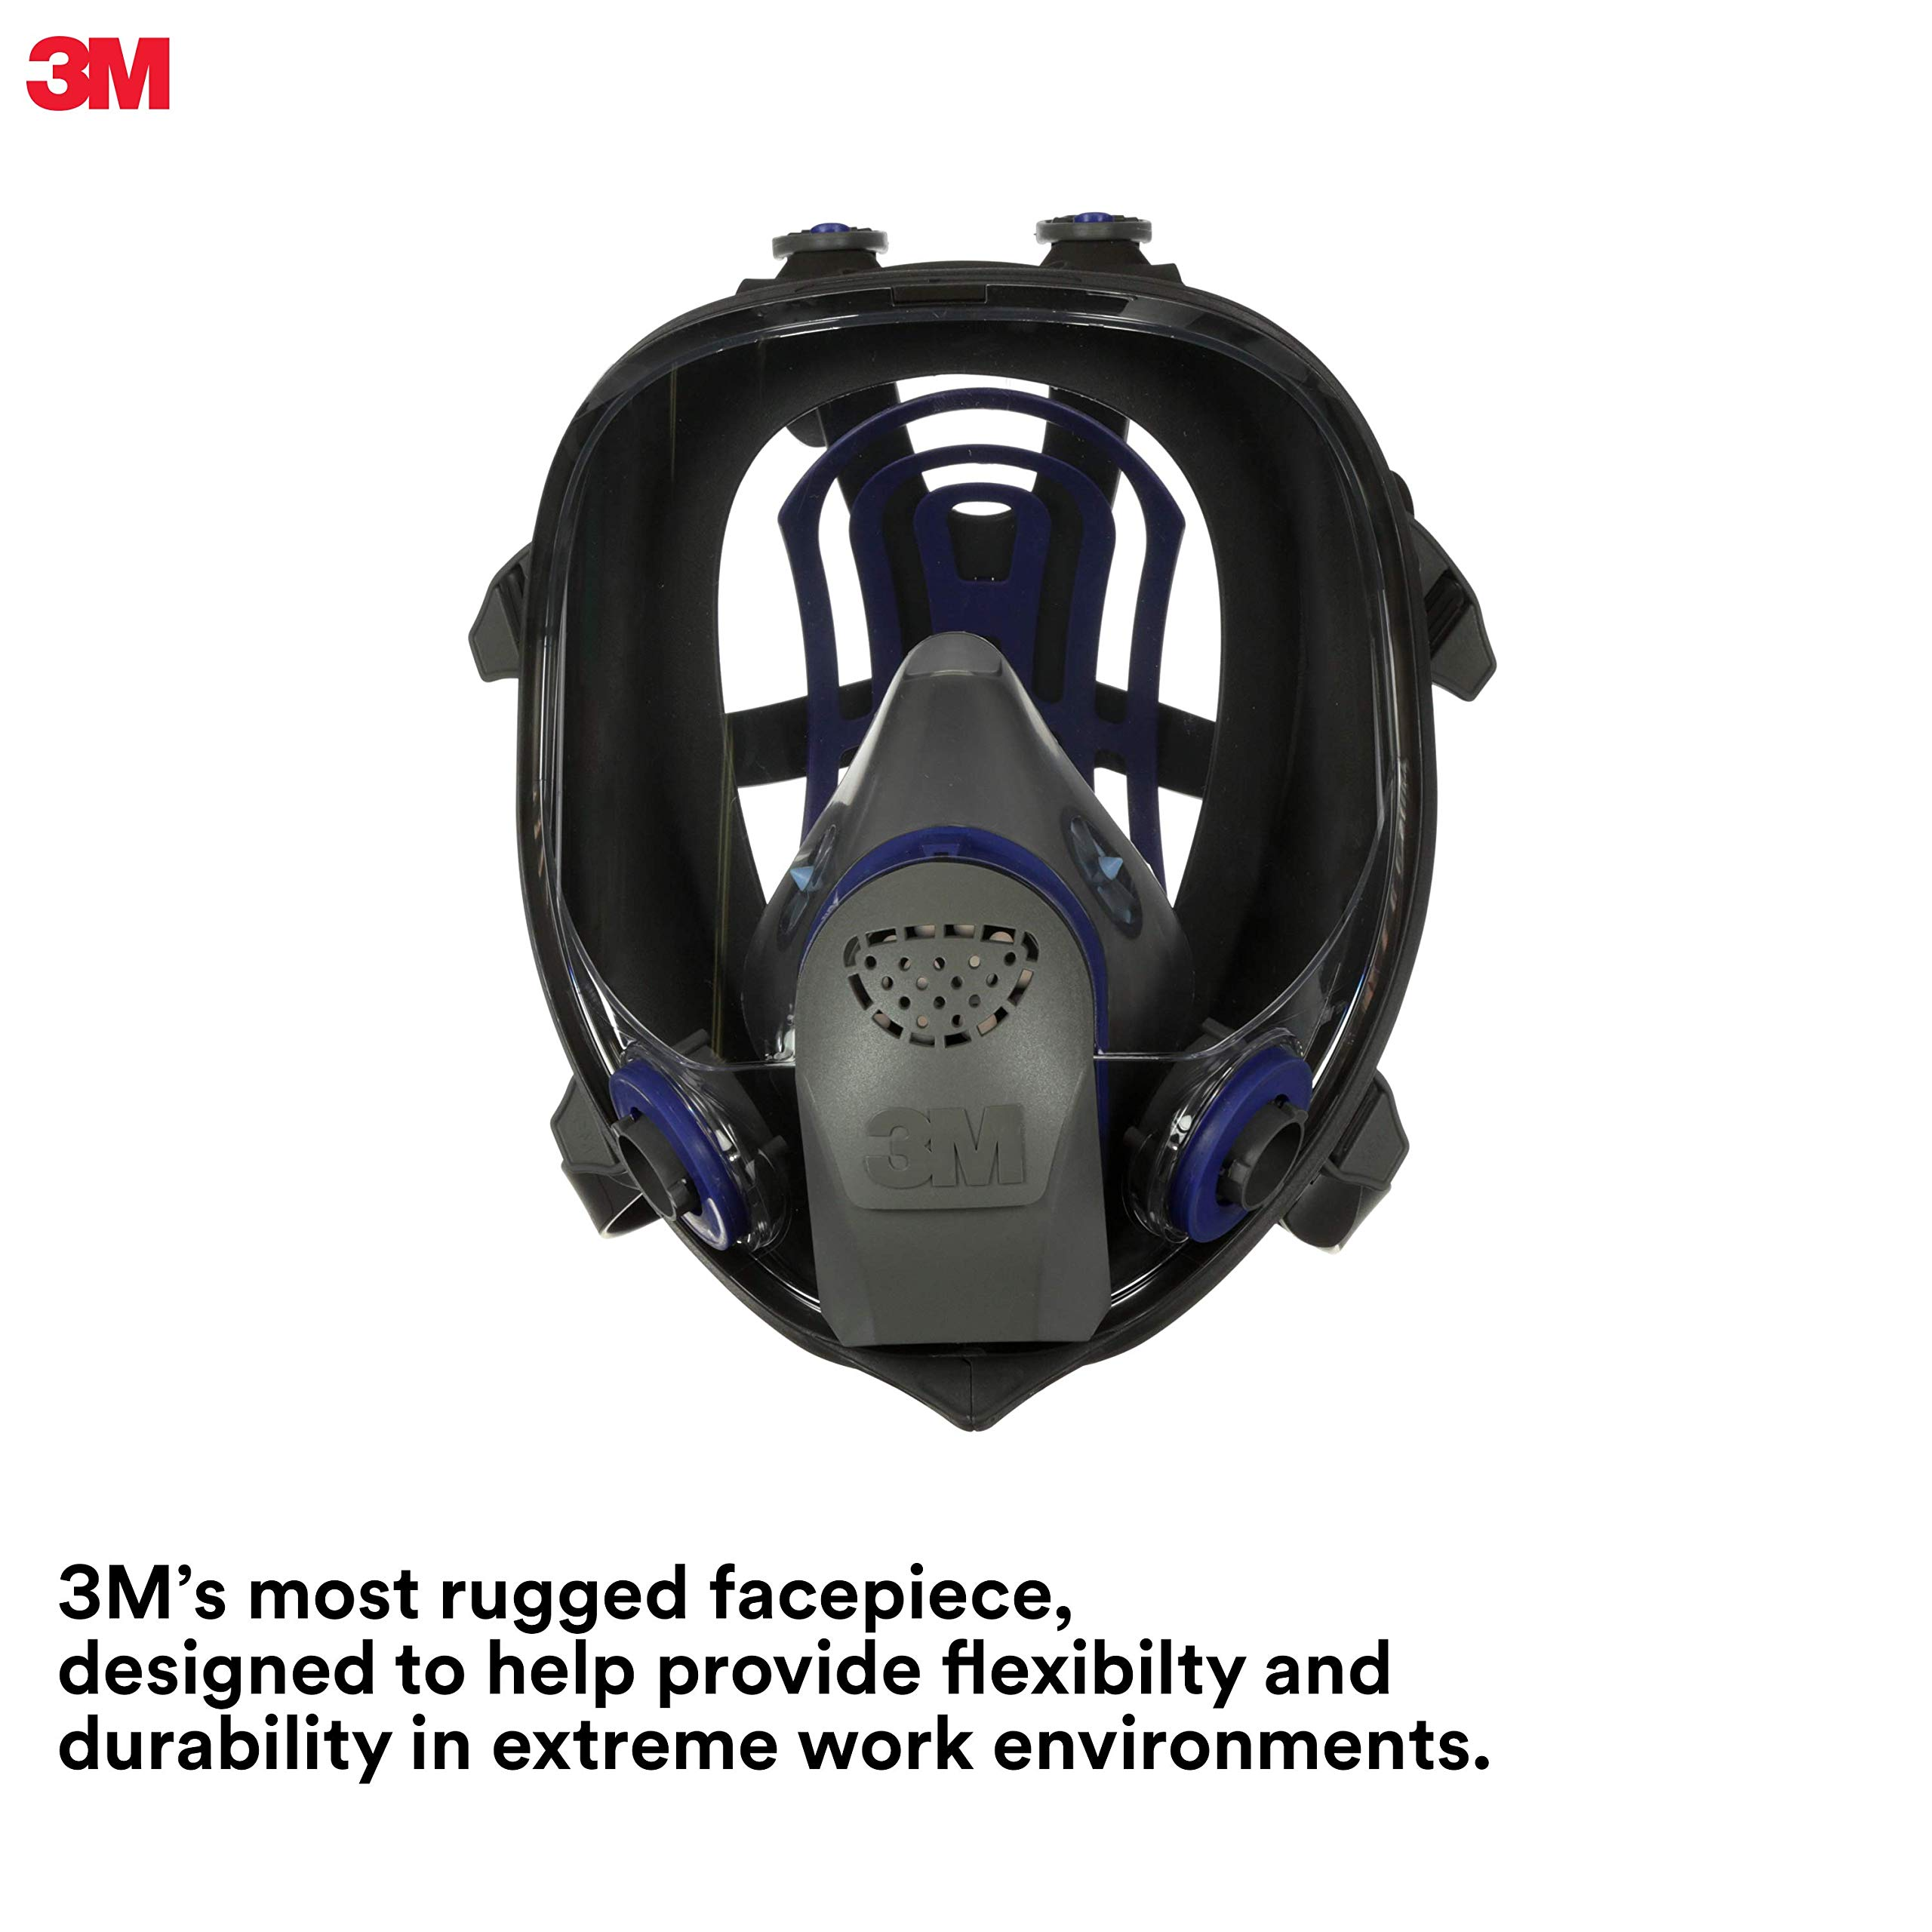 3M Ultimate FX Full Facepiece Reusable Respirator FF-401, Mold, Painting, Sanding, Chemicals, Gases, Dust, Small